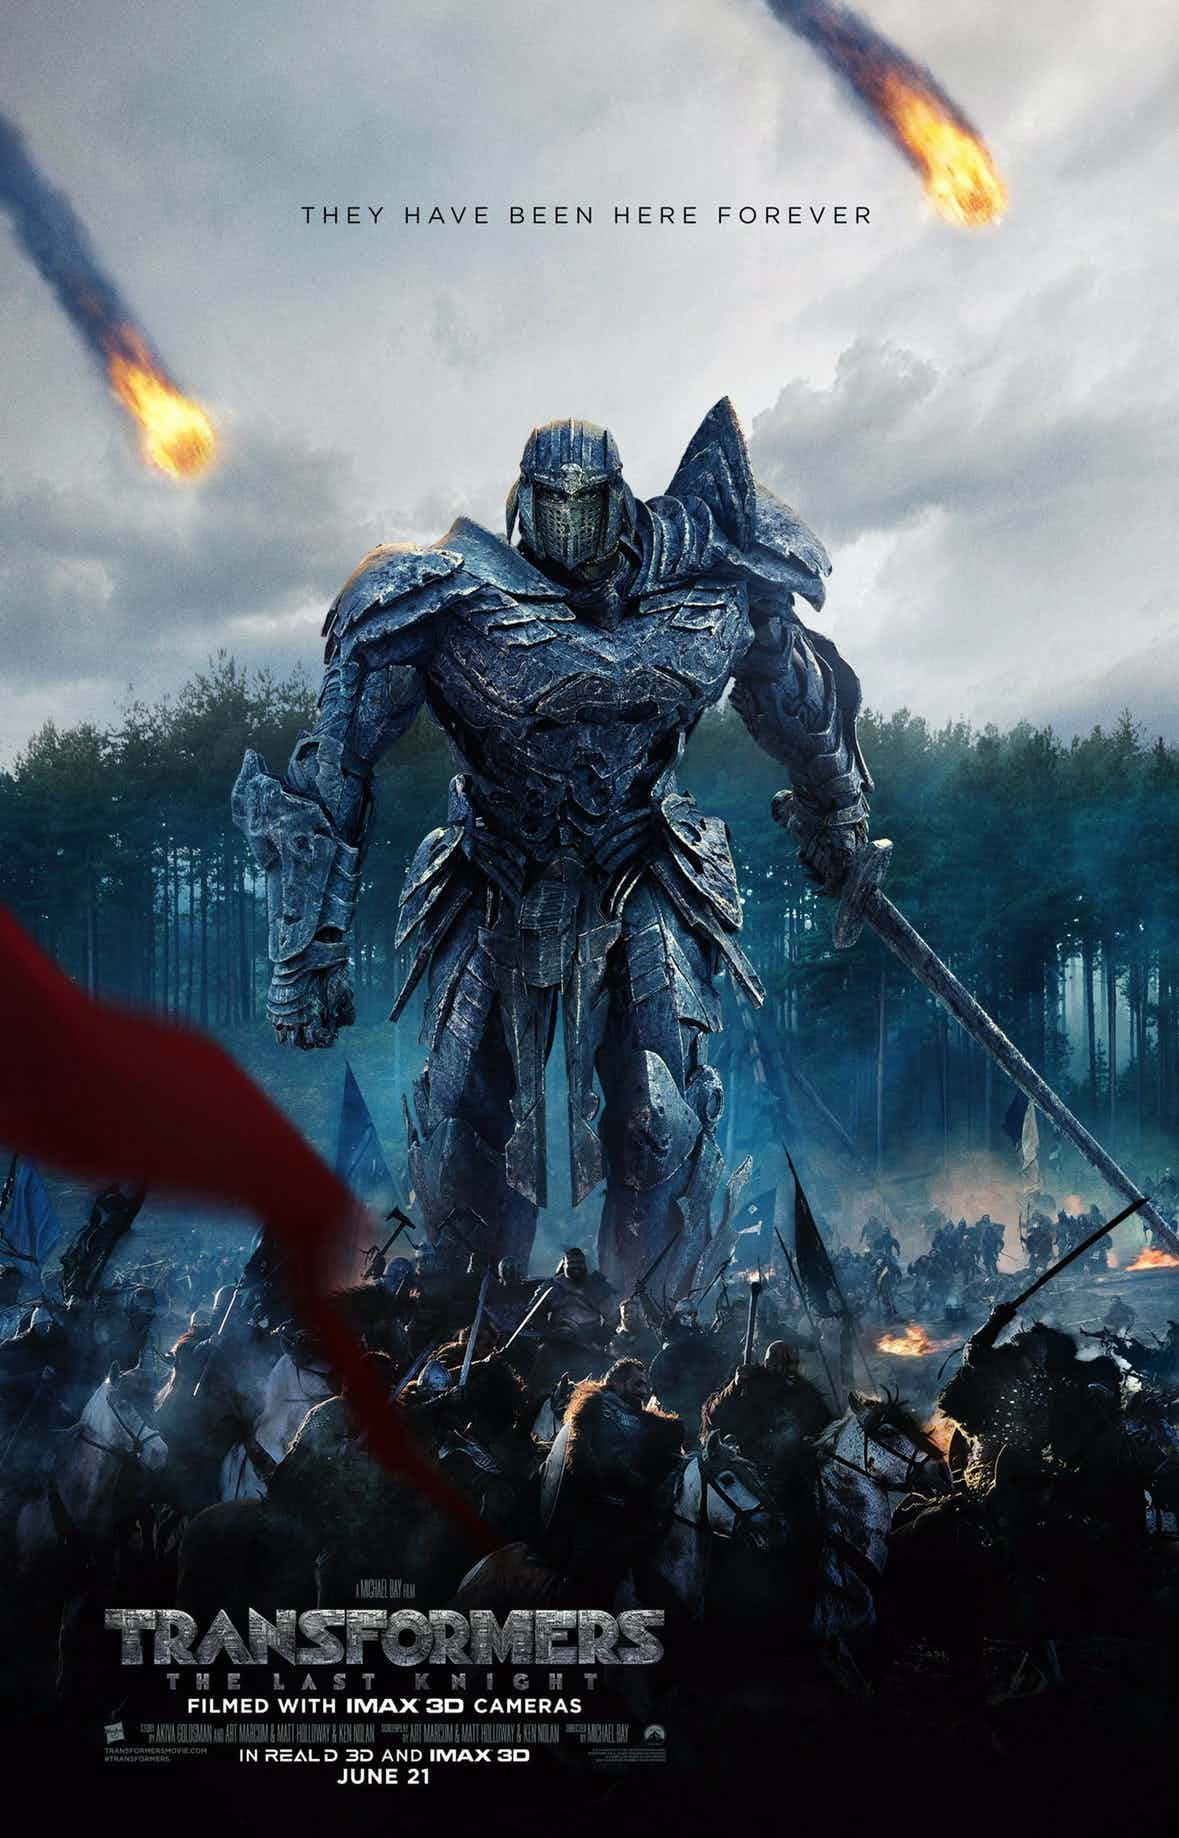 Medieval Poster For Transformers: The Last Knight Journeys Back In Time